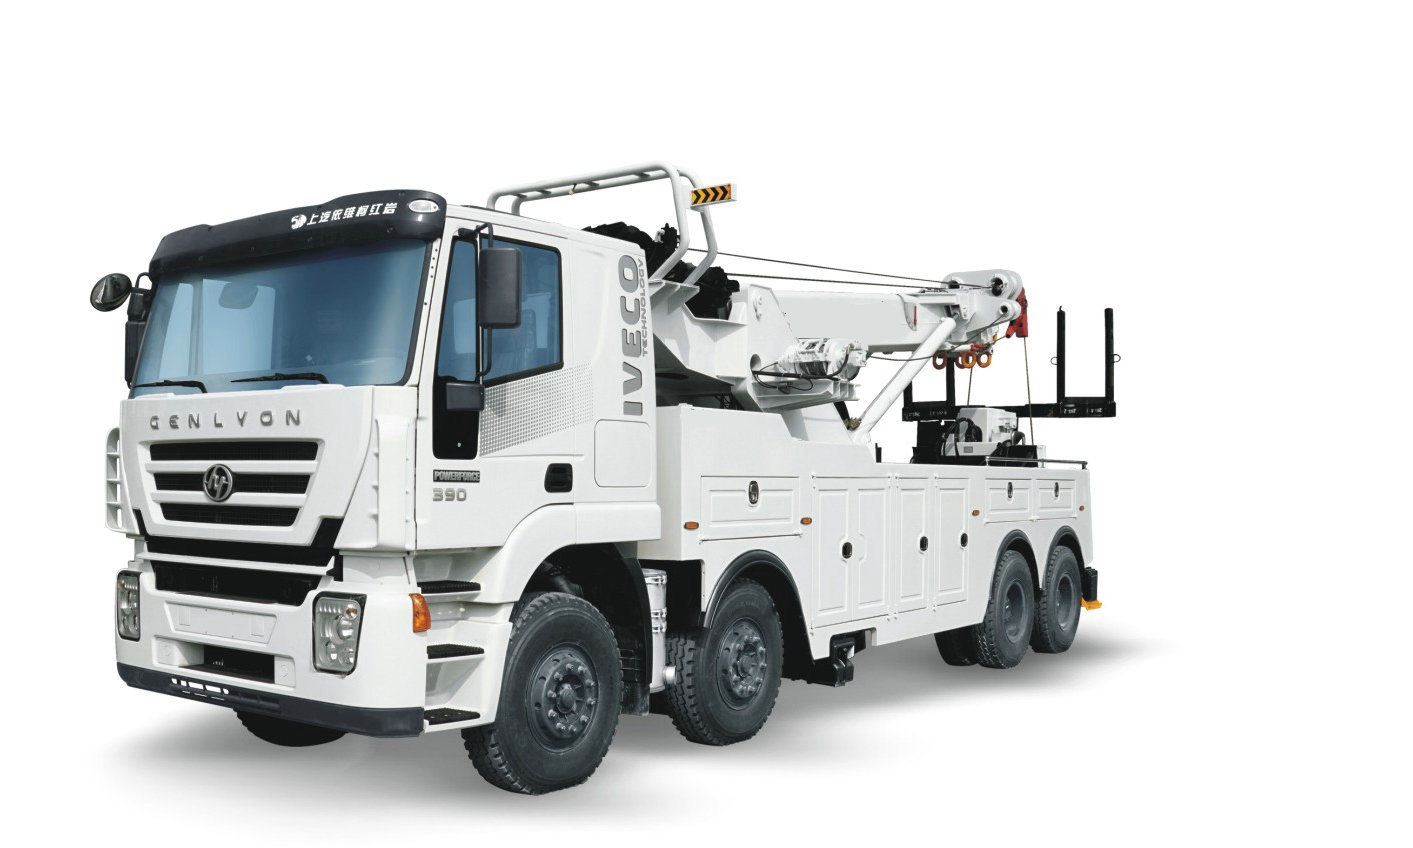 China Iveco Genlyon Recovery Trucks Heavy Duty Wrecker 50tons With Remote Control Rotatory Crane Wrecker For Towing Truck China Recovery Trucks Heavy Duty Wrecker